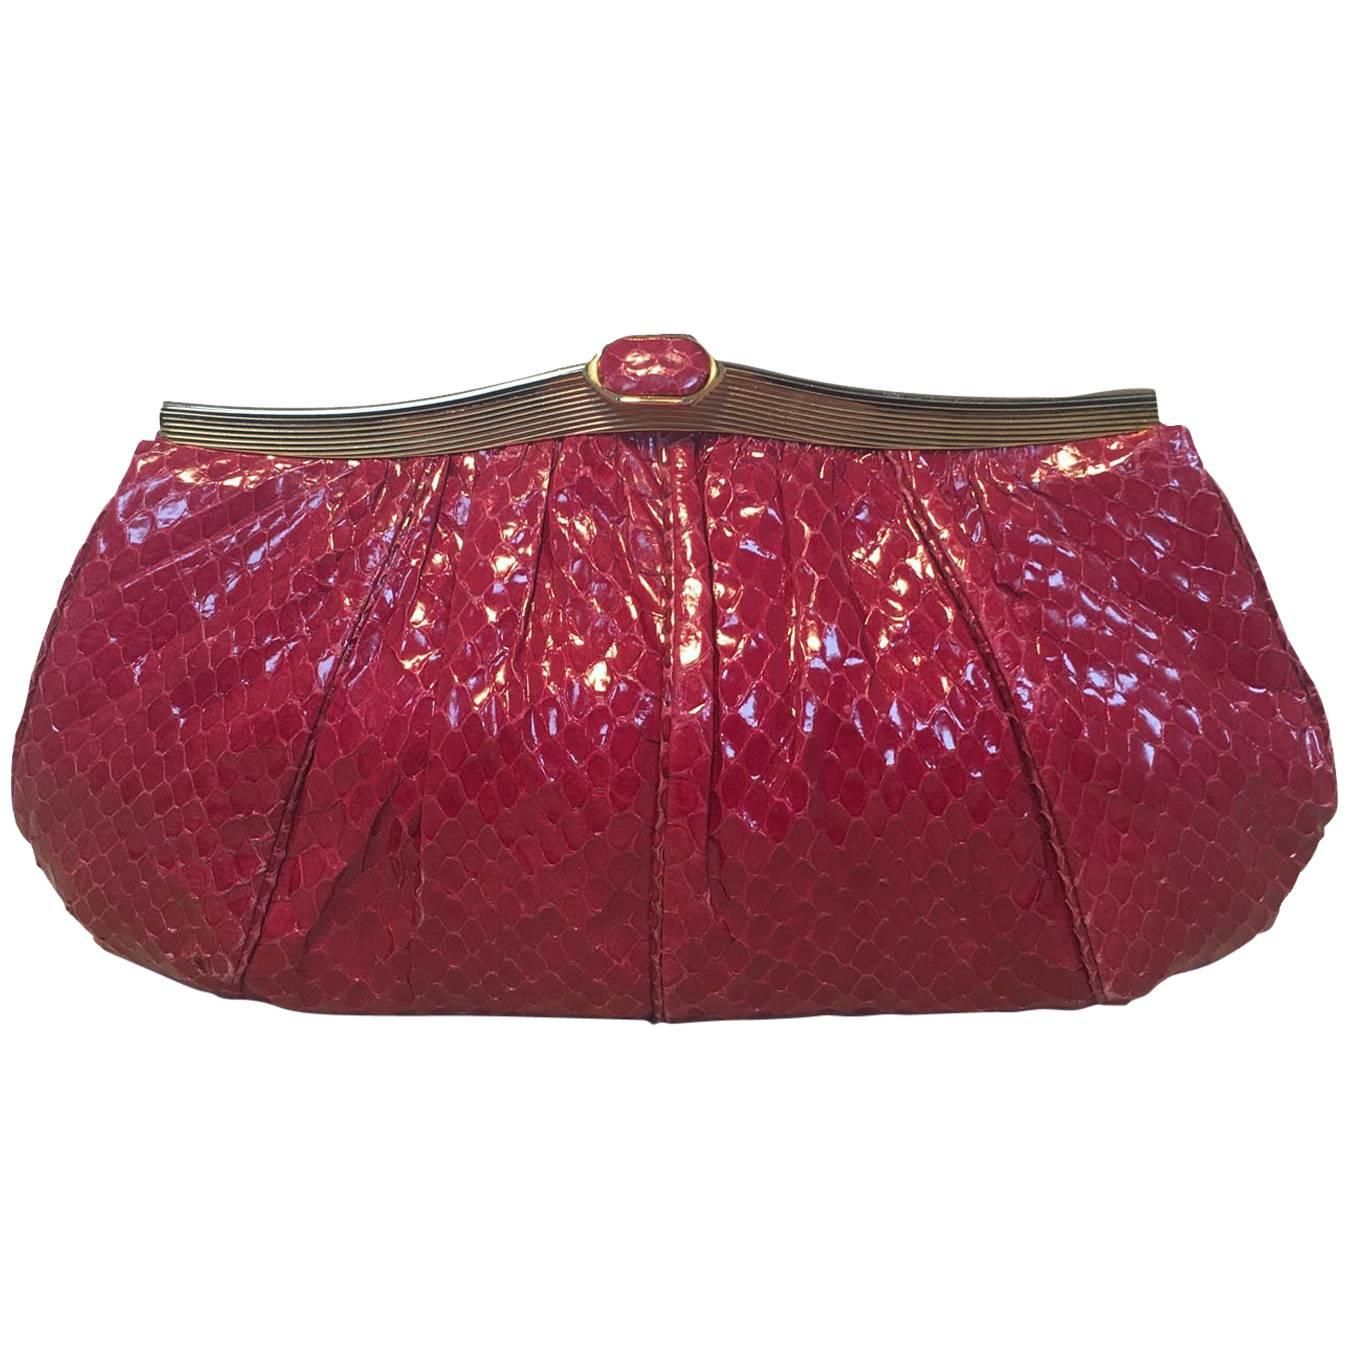 Judith Leiber Ombre Plum To Red Snake Skin Clutch Handbag New With Tags mm8gD8TqO